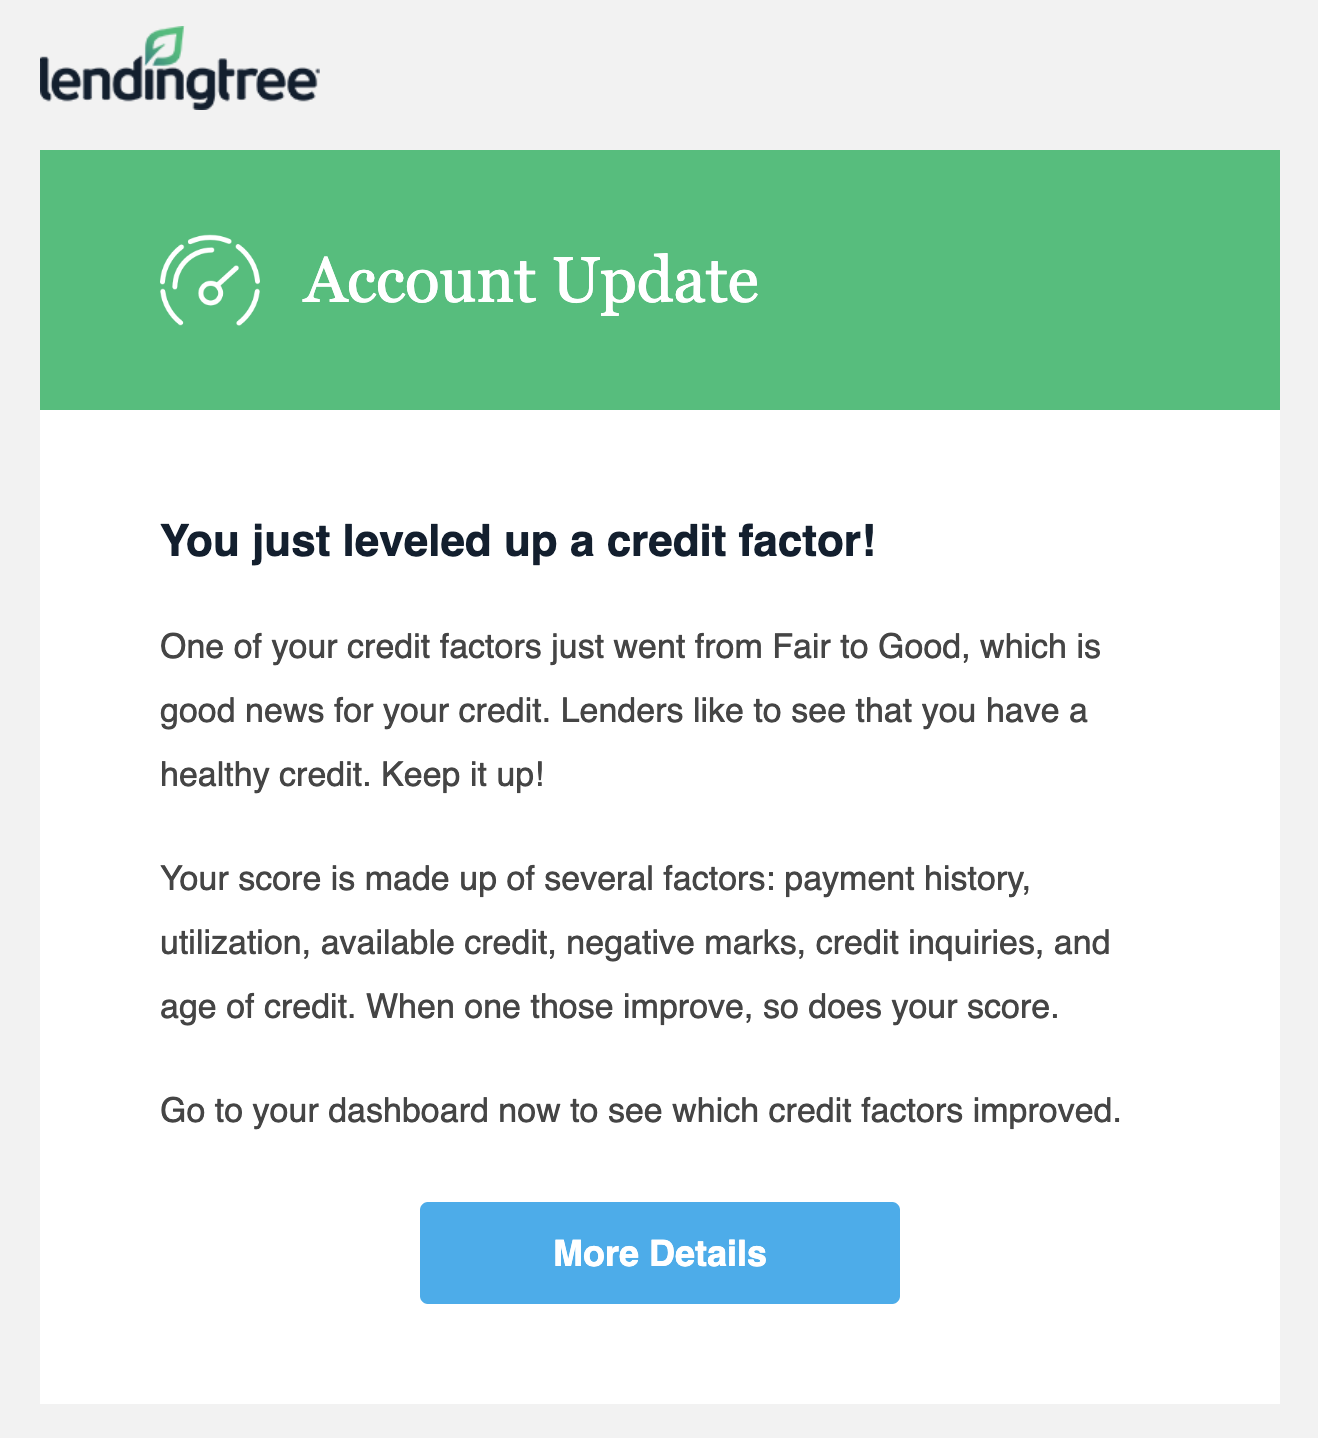 lendingtree call to action example